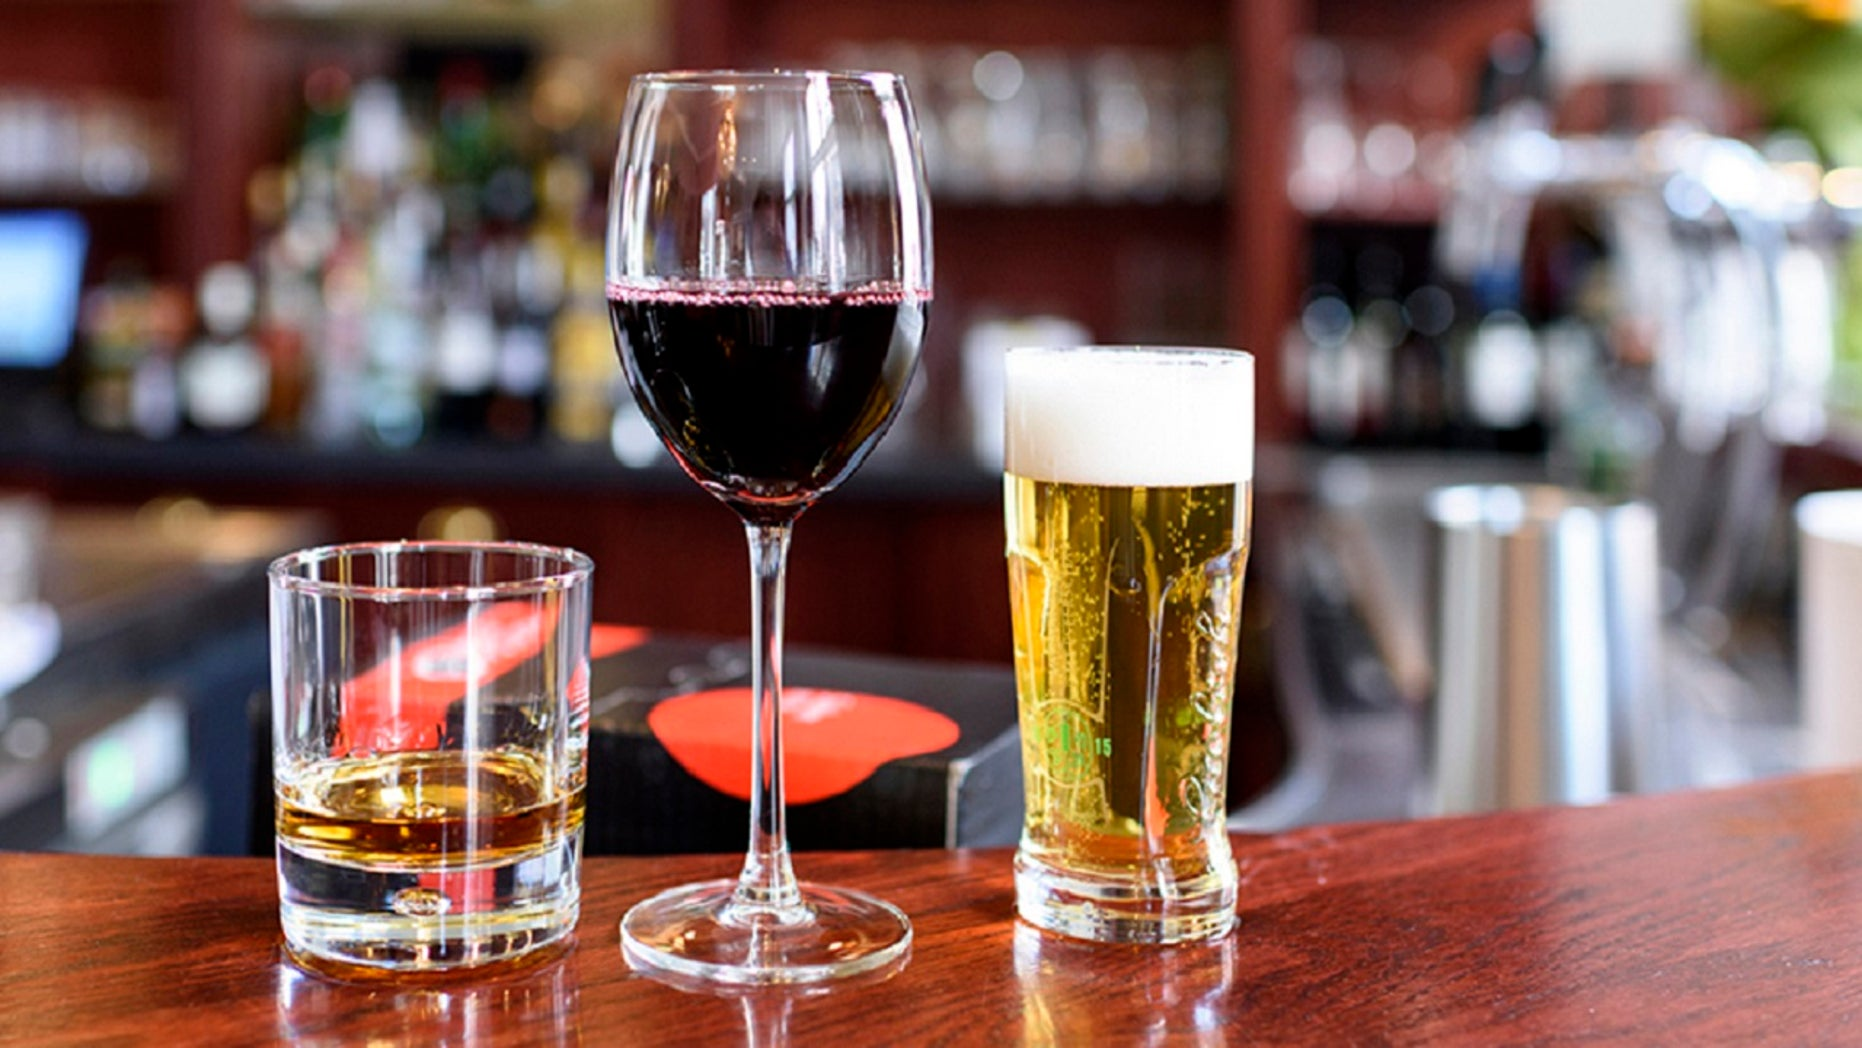 Beer Before Wine? Turns Out It Doesn't Matter